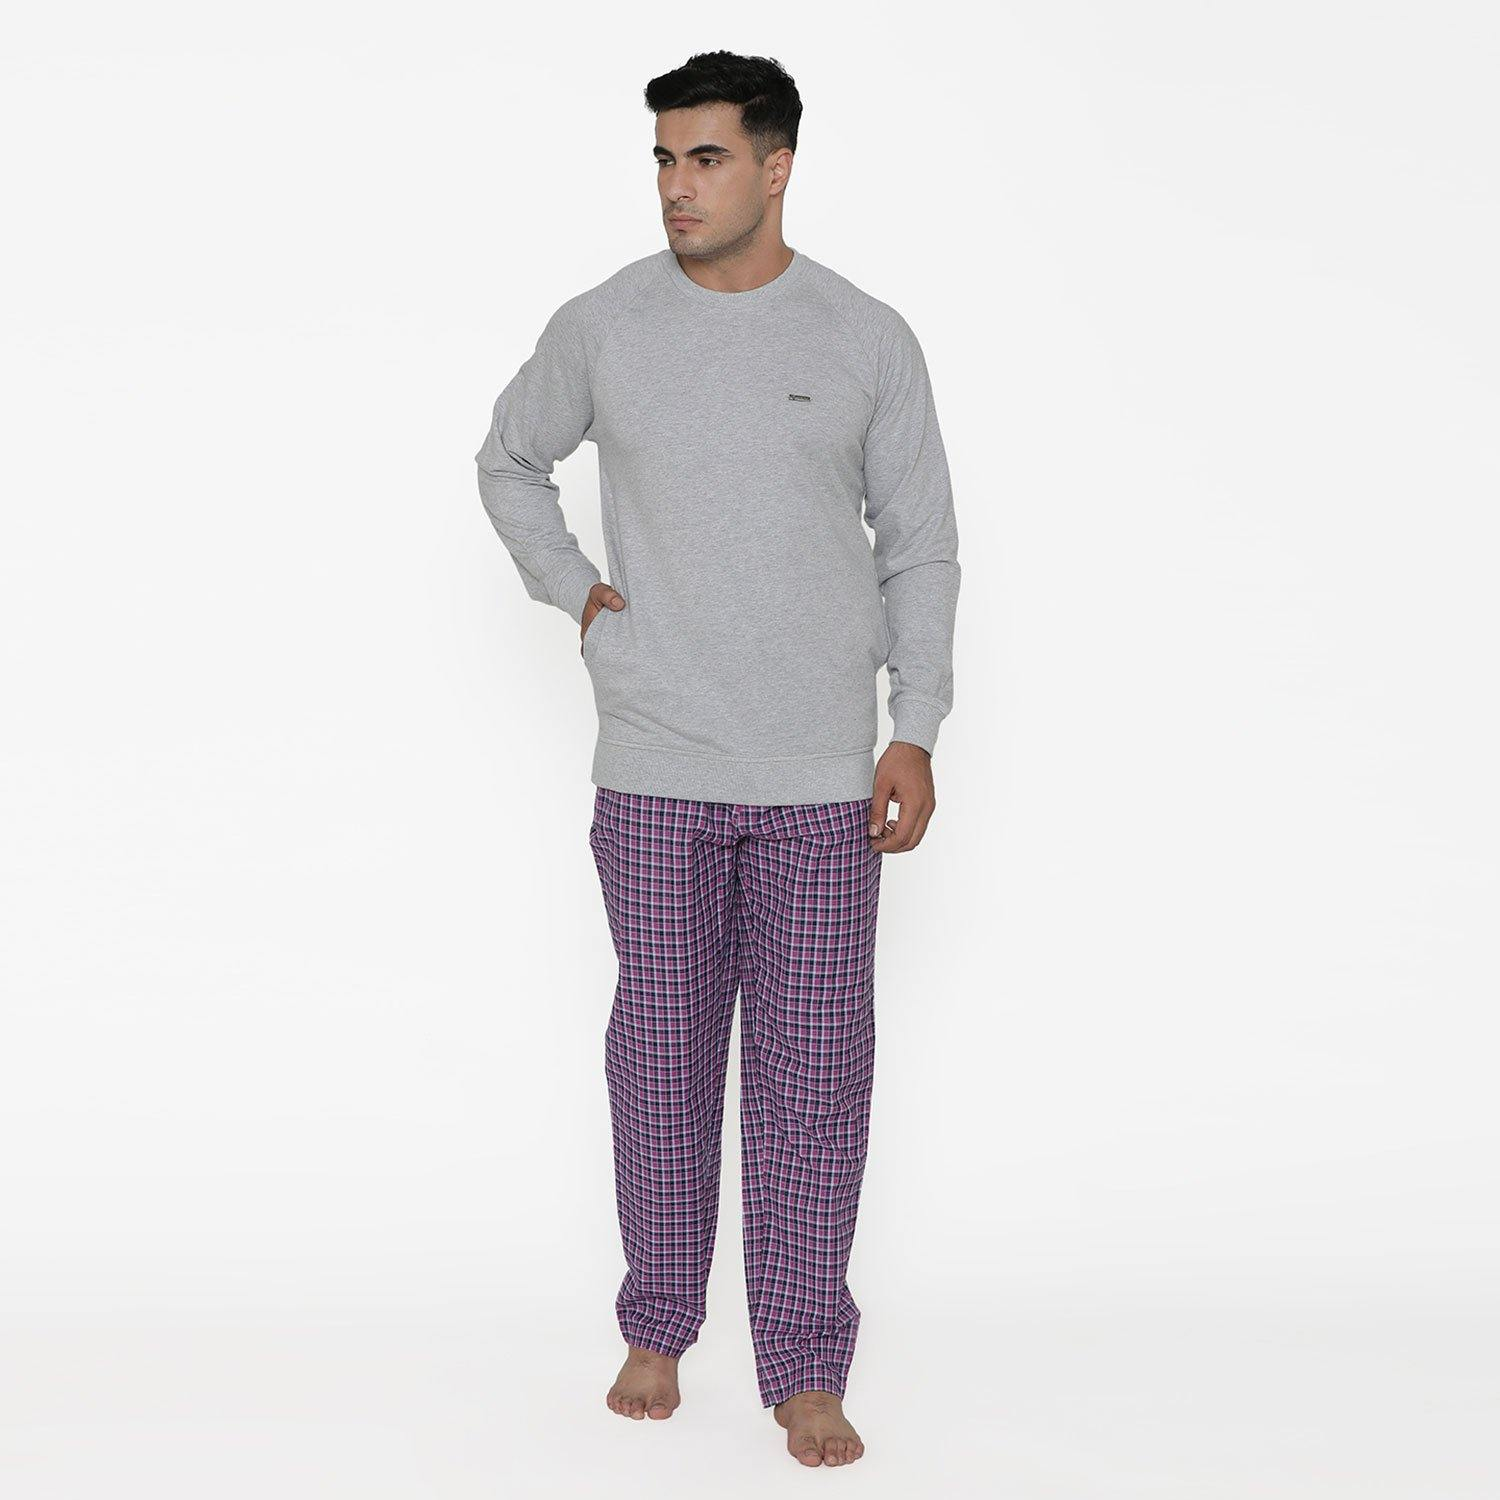 Men's Regular Fit Casual  Winter Lounge Wear - Pajama Set